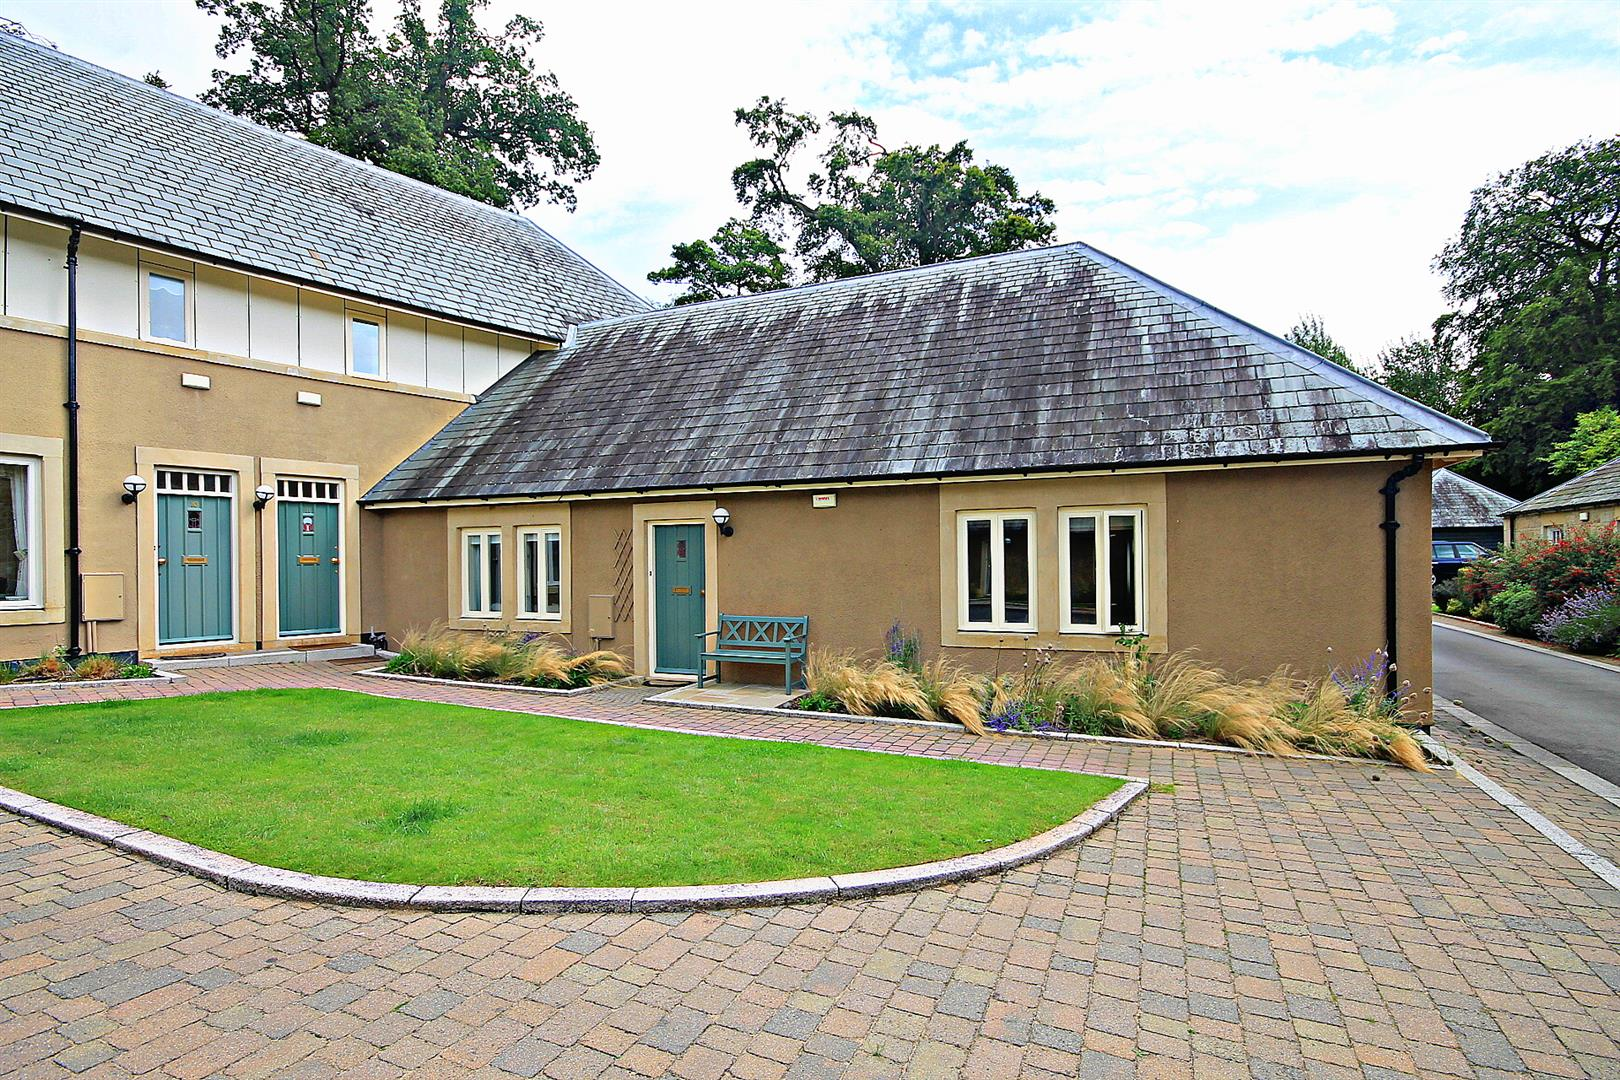 3 Bedrooms Mews House for sale in Darlington Road, Durham